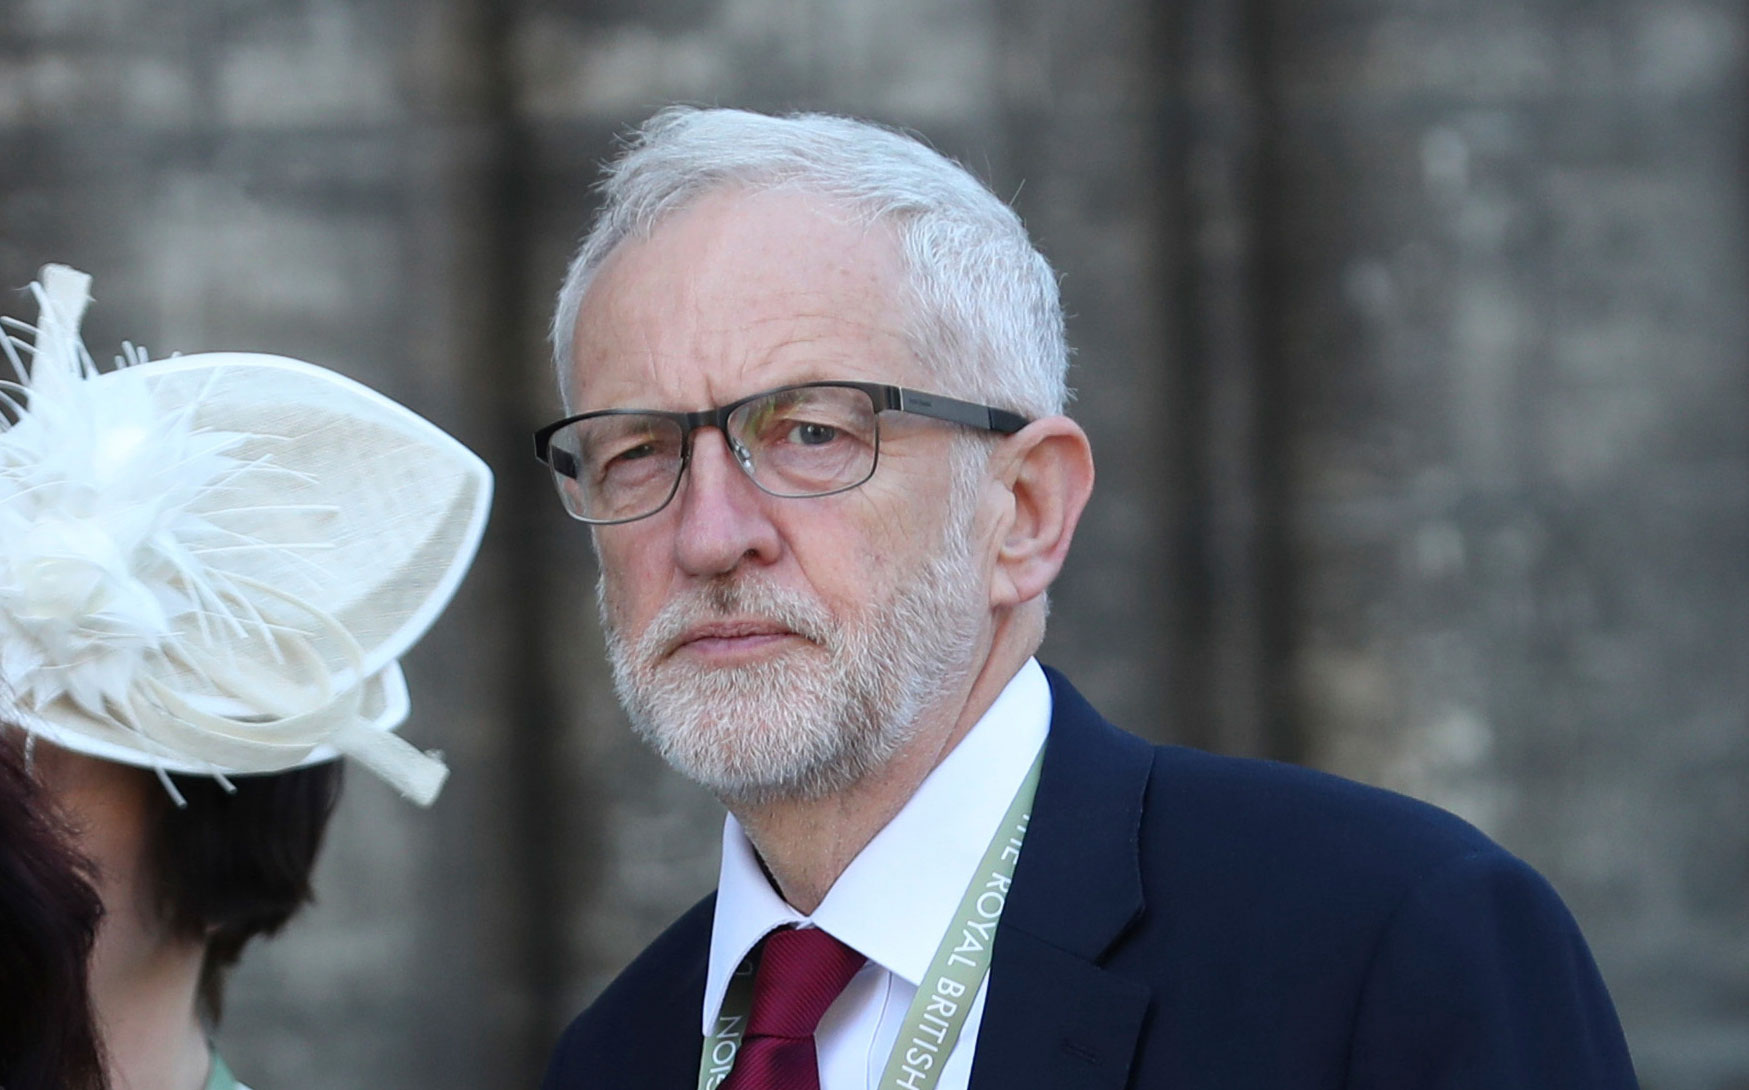 Corbyn has repeatedly stressed that there is no place for either racism or religious bigotry in the Labour party